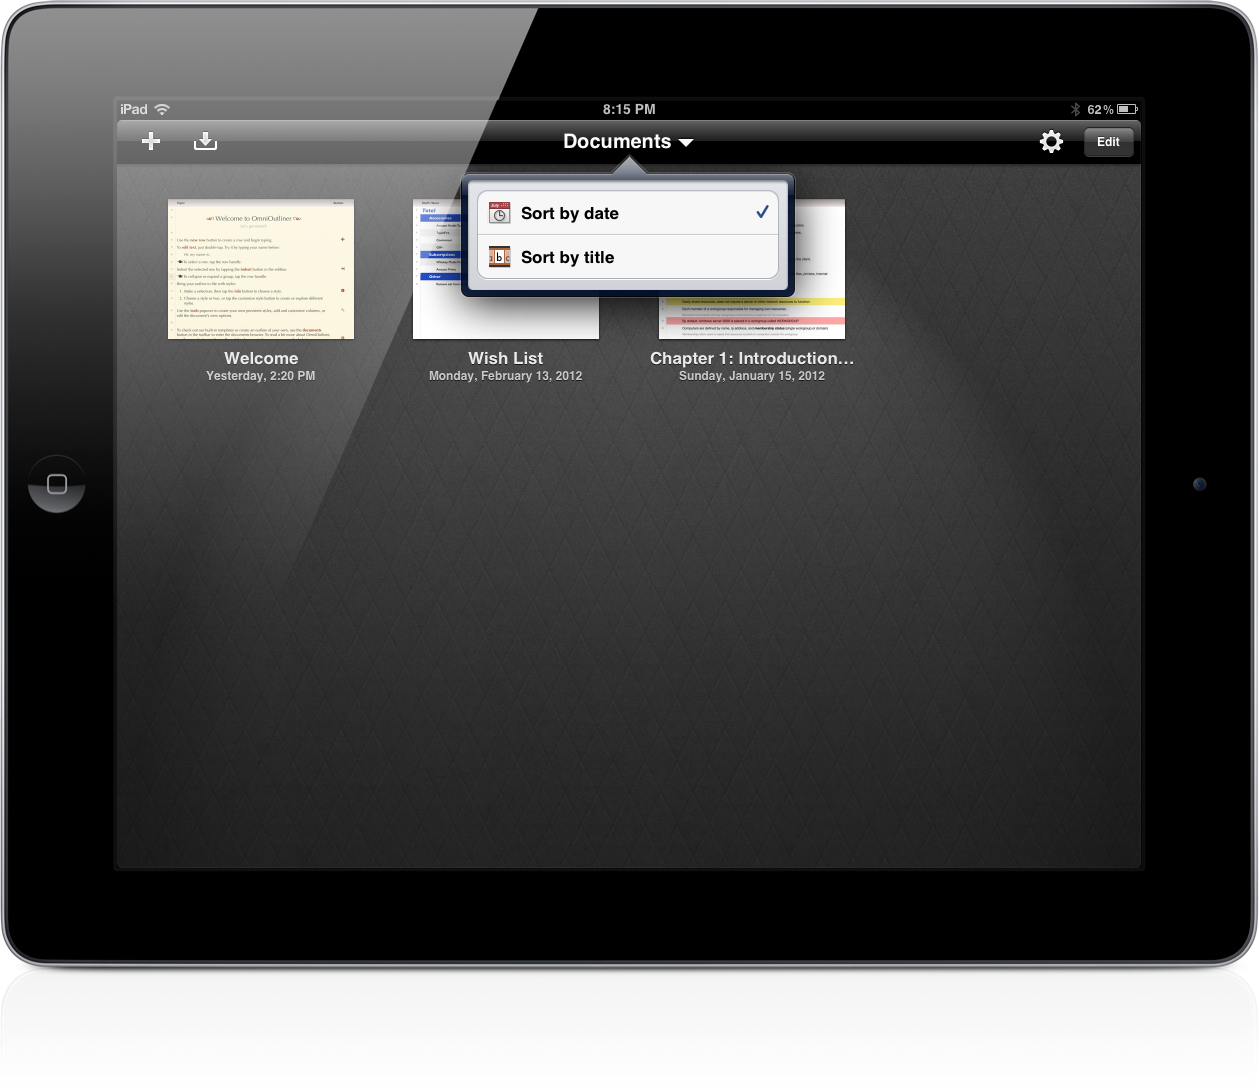 omnioutliner 1 2 for ipad sets the stage for icloud sync